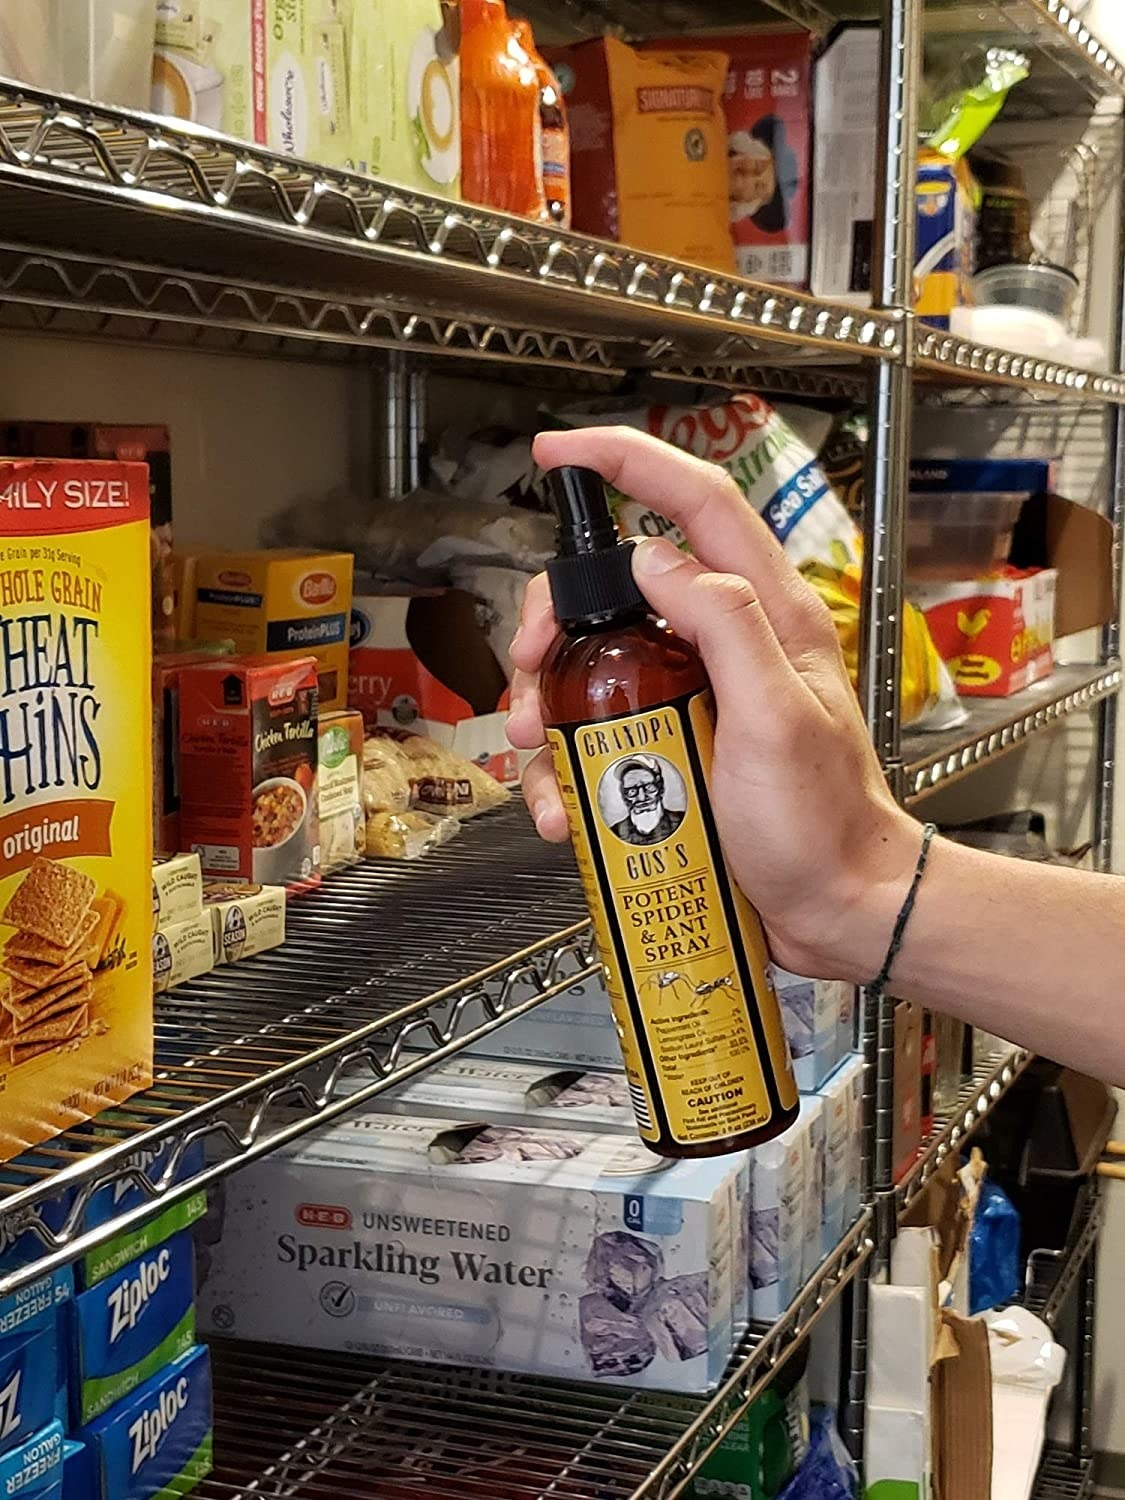 Person spraying shelves of packaged food in a grocery store